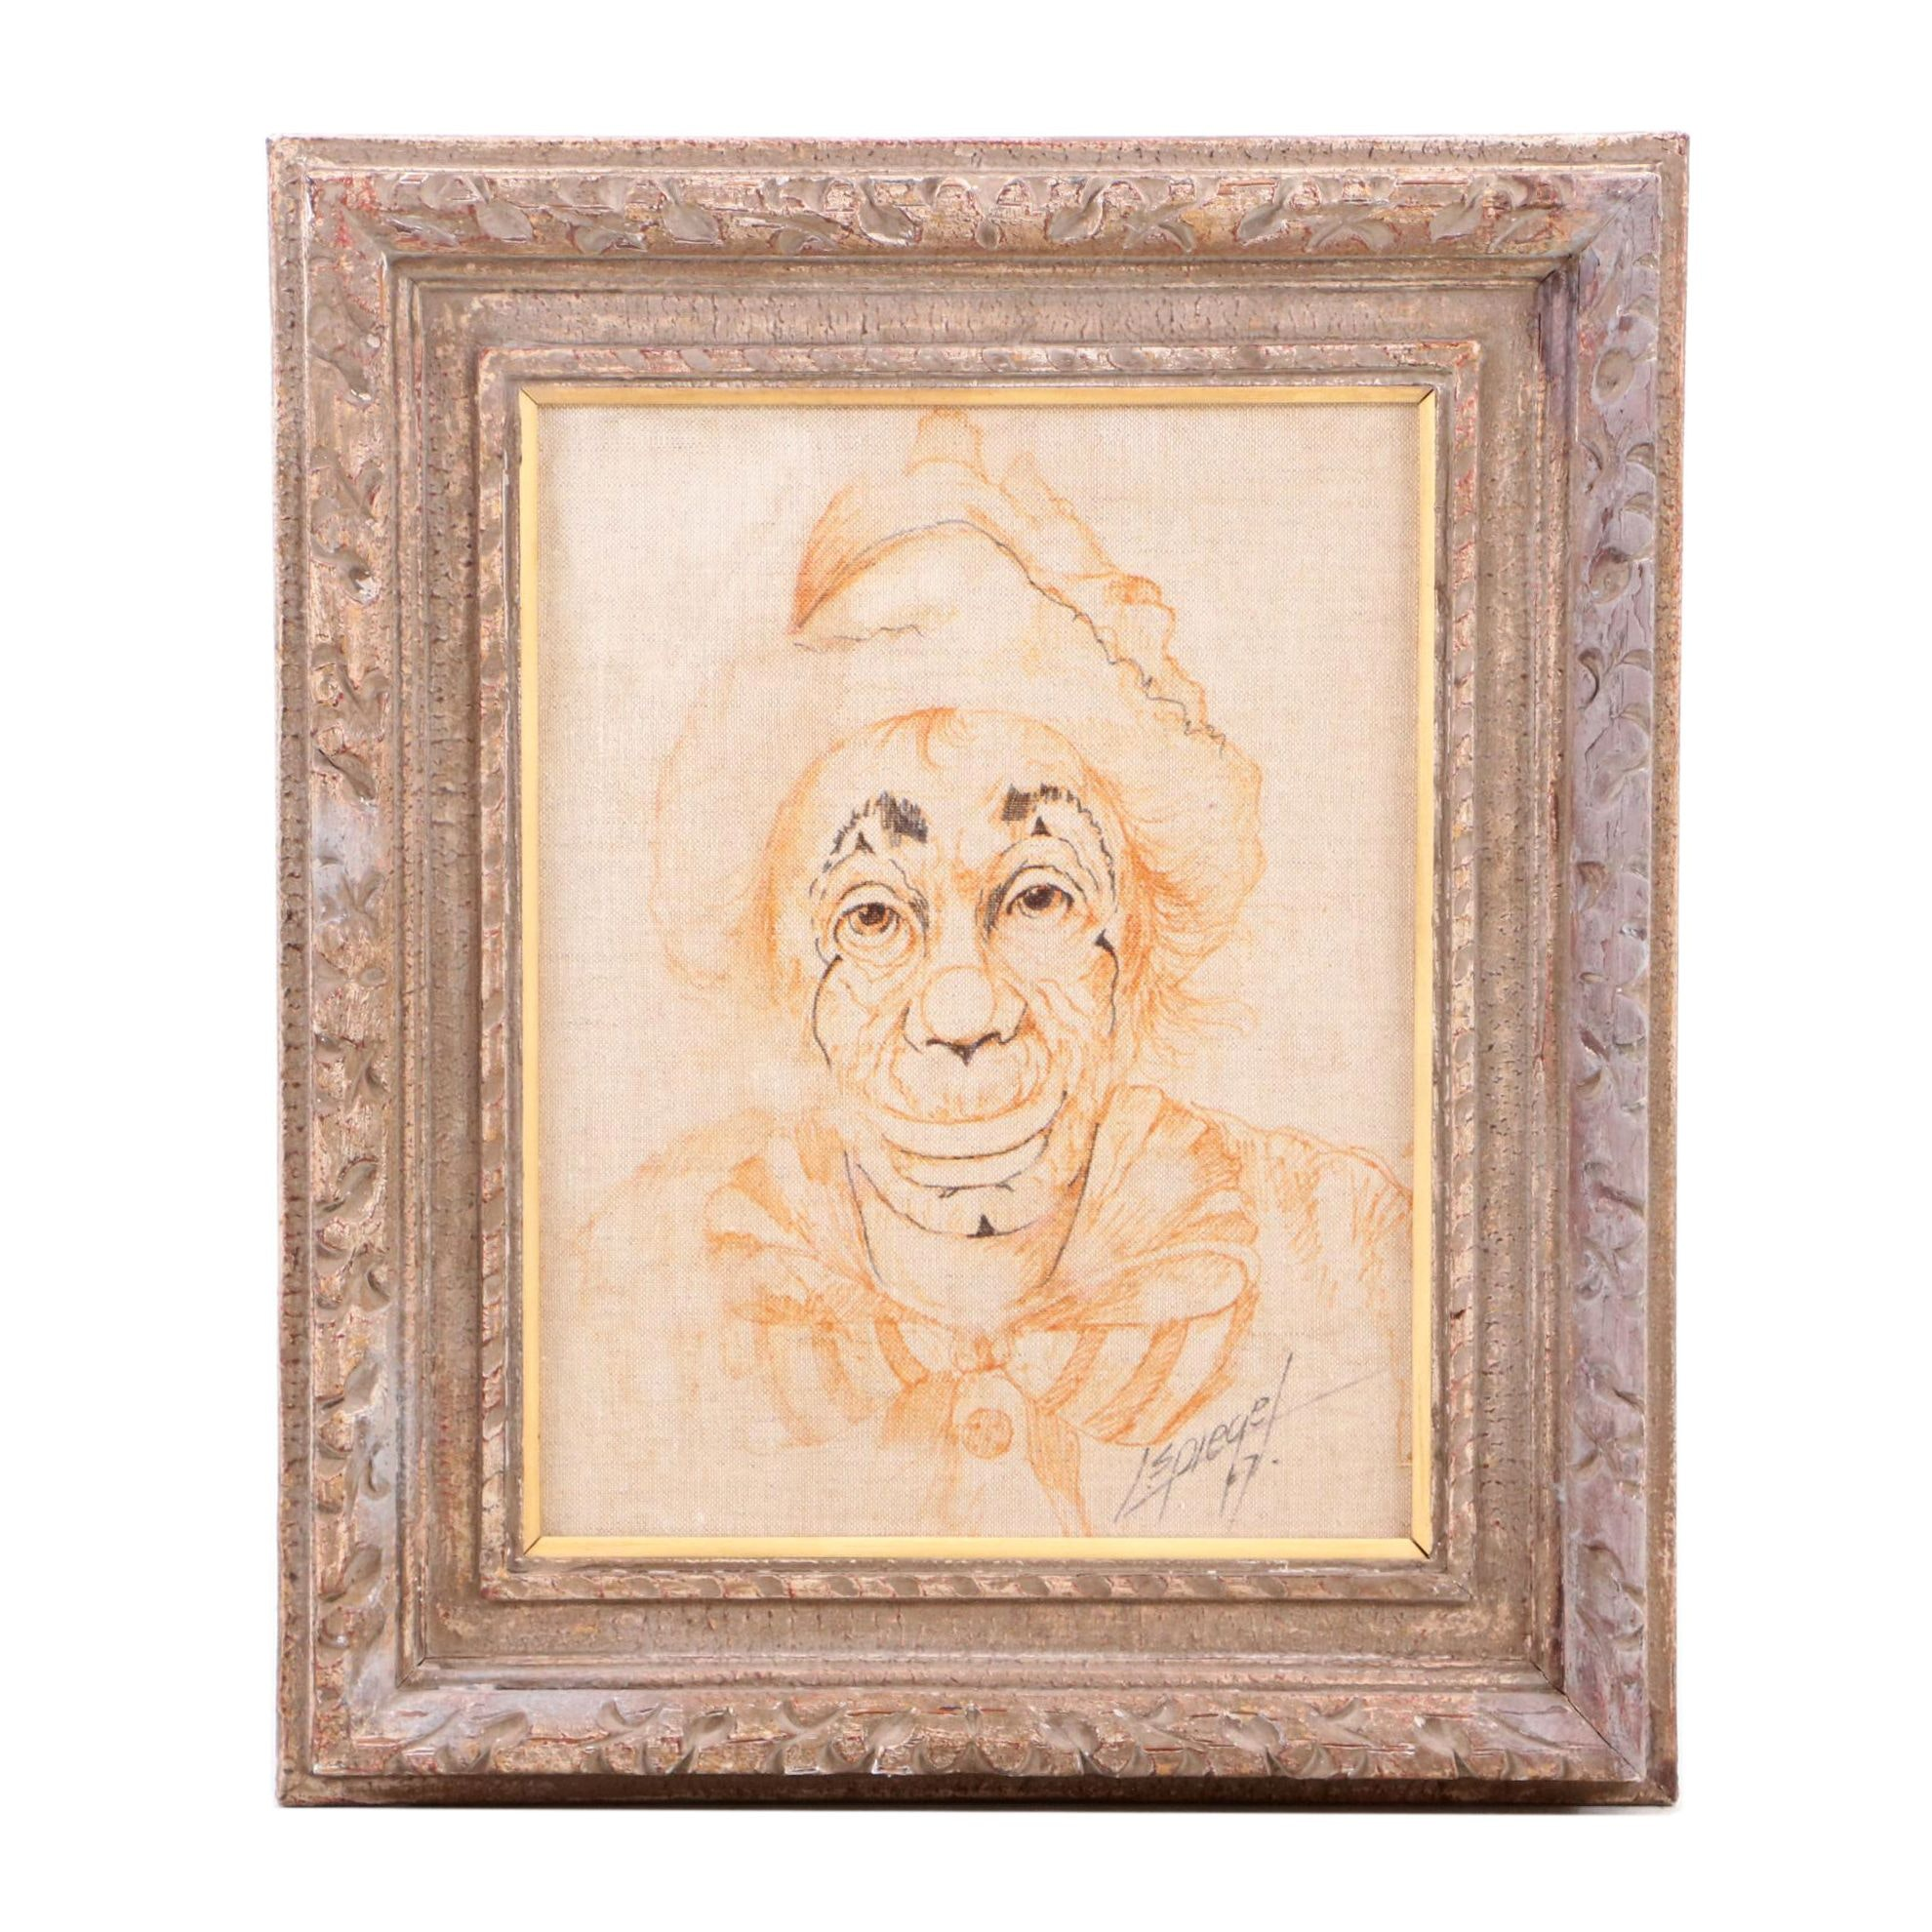 Louis Spiegel Vintage Drawing of Clown